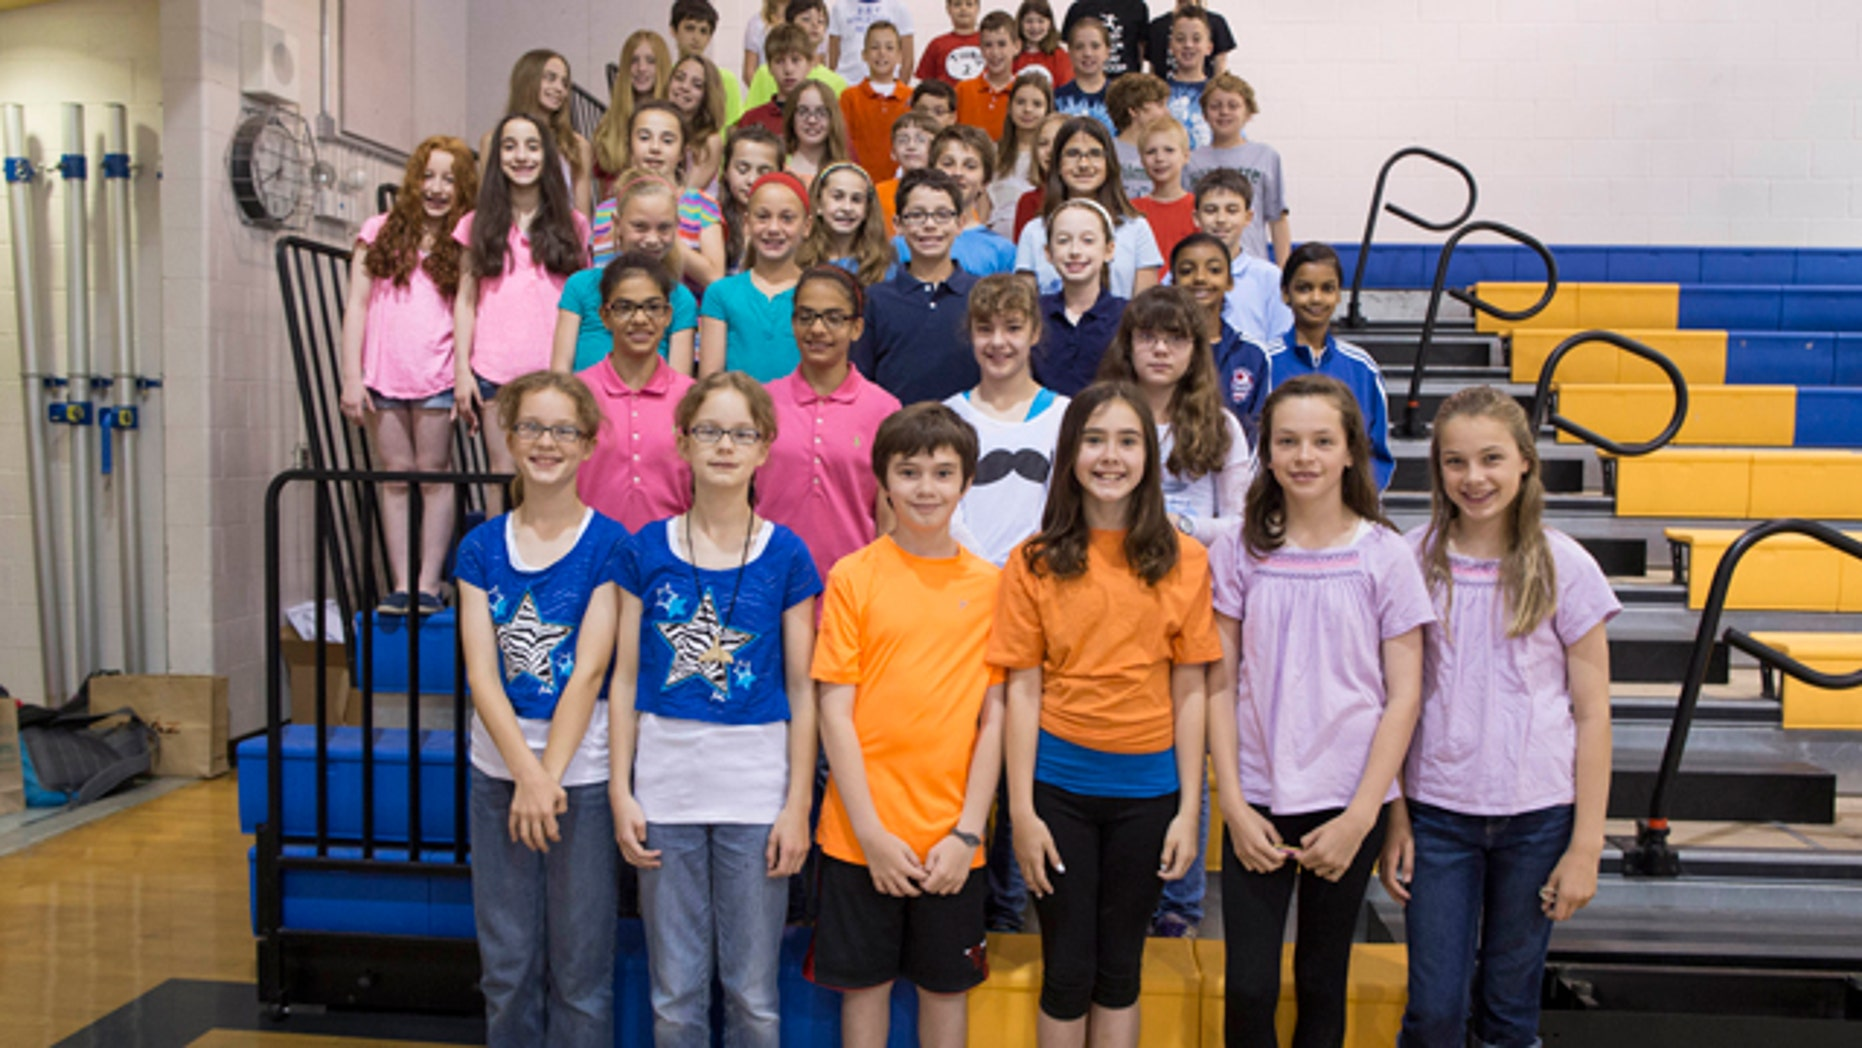 June 6, 2013: Twenty-four sets of twins who are fifth-graders at Highcrest Middle School in Wilmette, Ill.